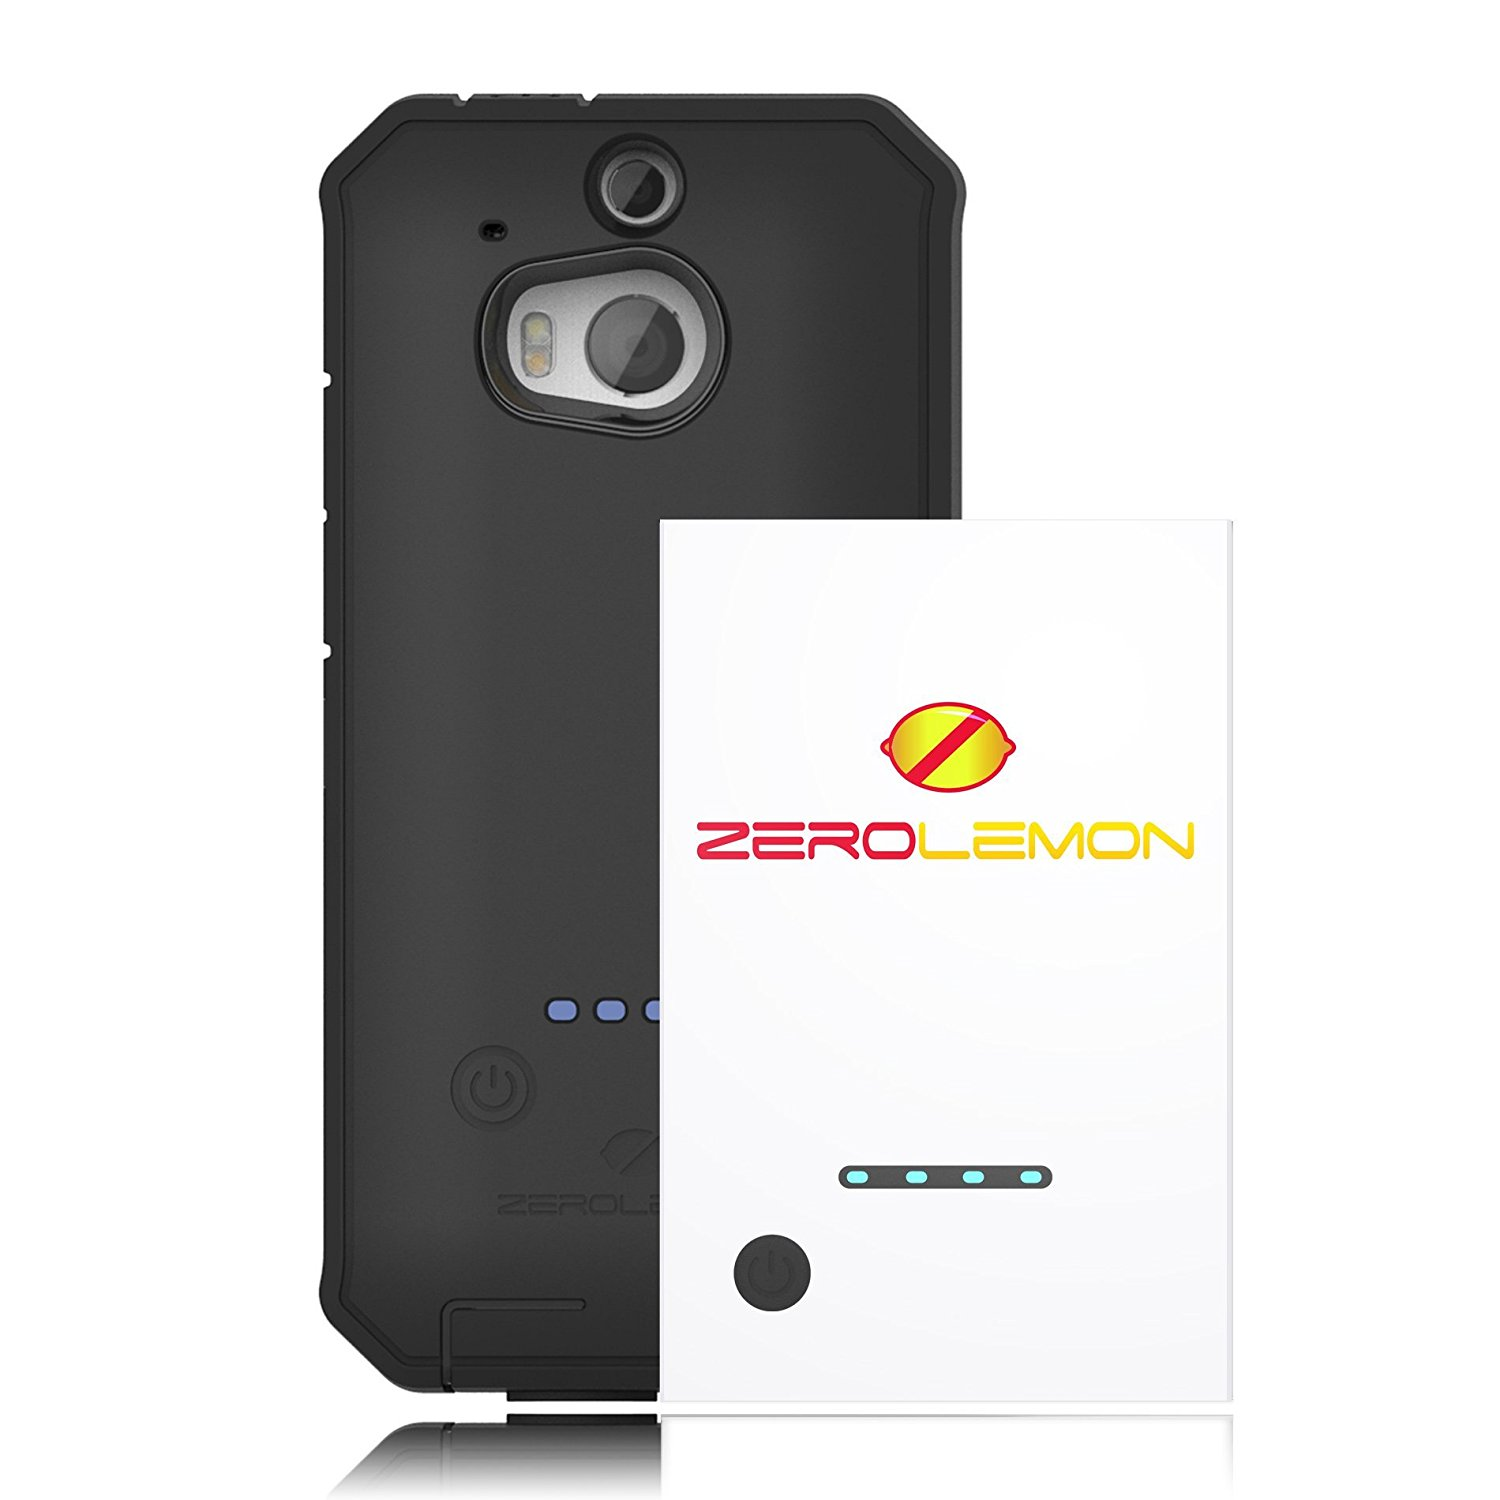 Get Quotations Zerolemon 2100 Mah Extended Battery Charging Case Combo For Htc One M8 Includes Durable Rugged